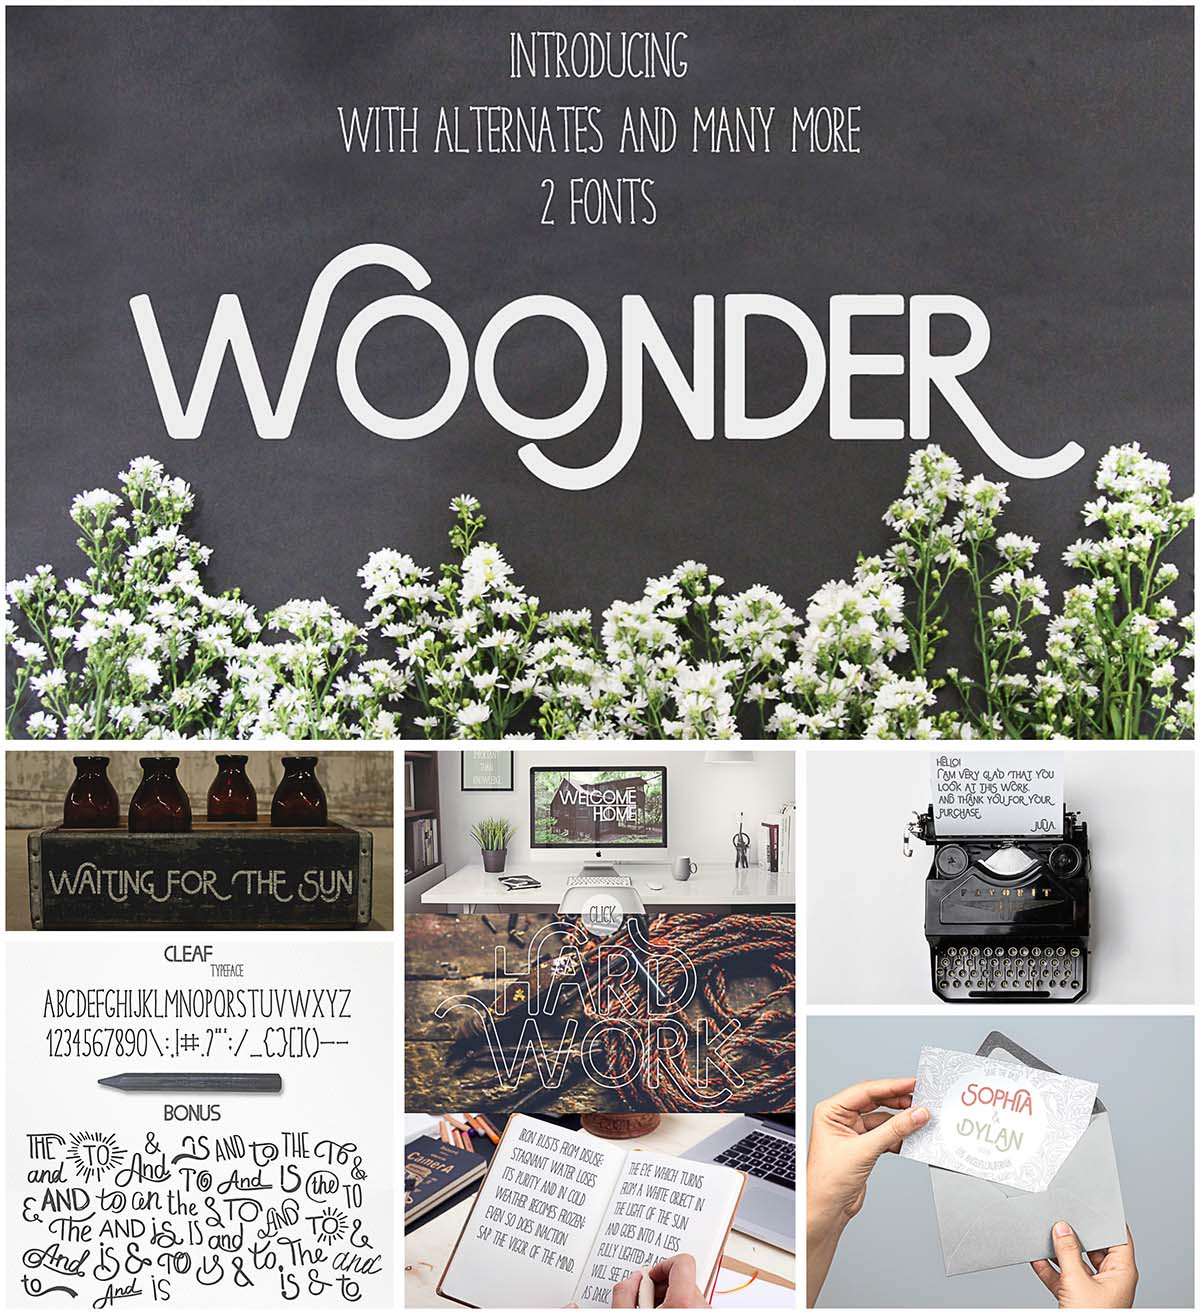 Woonder font with catchwords